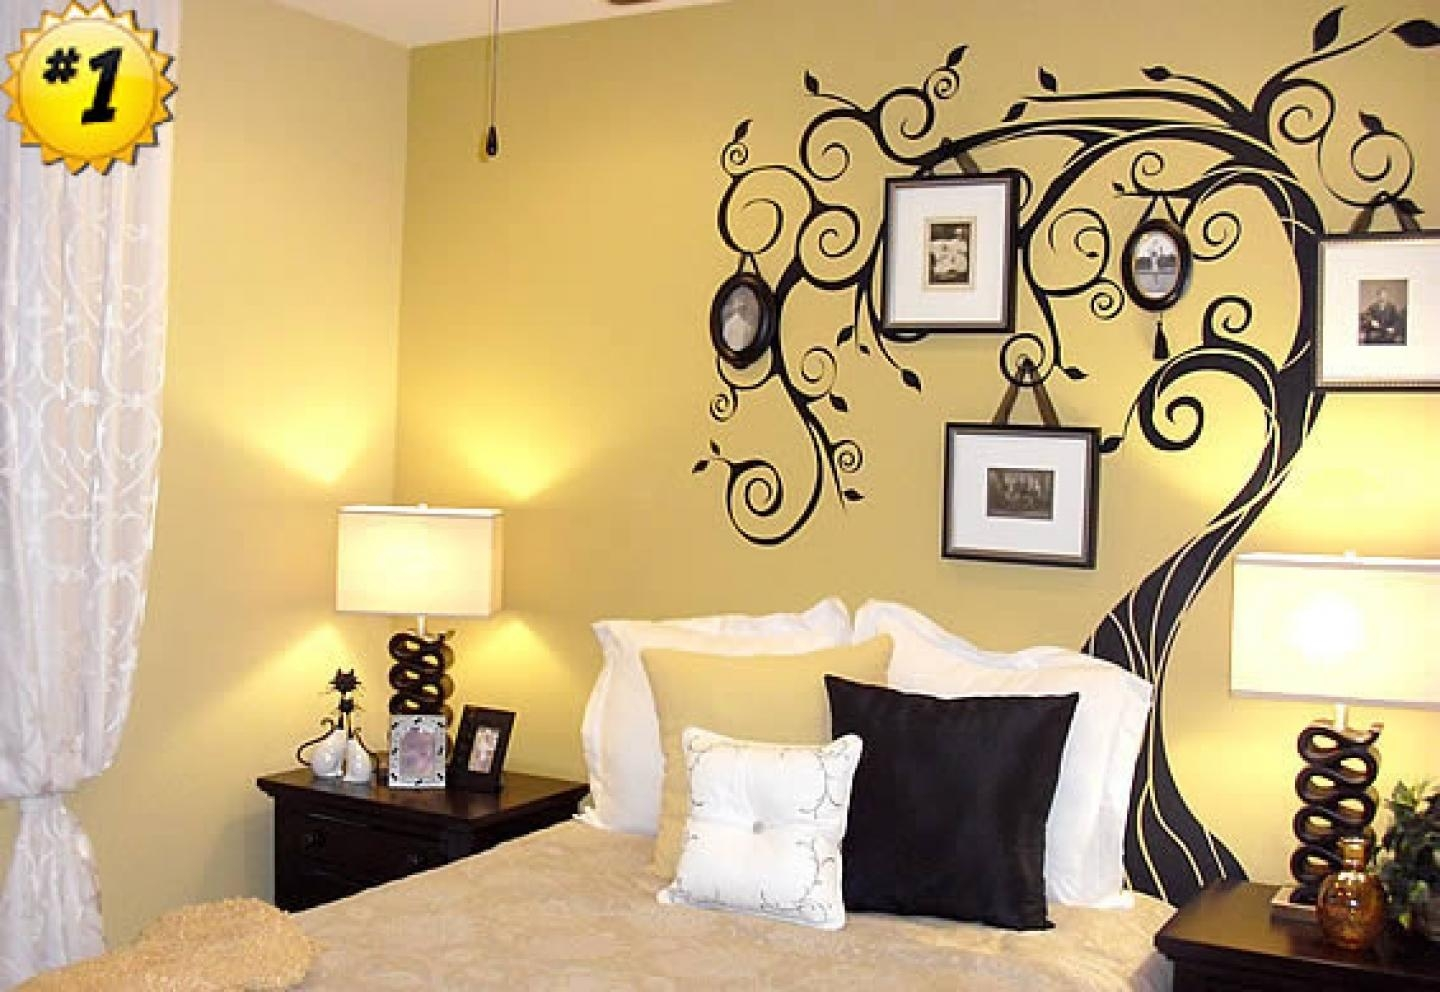 Bedroom Wall Art Paintings And With Regard To Wall Art For Bedrooms (View 8 of 21)